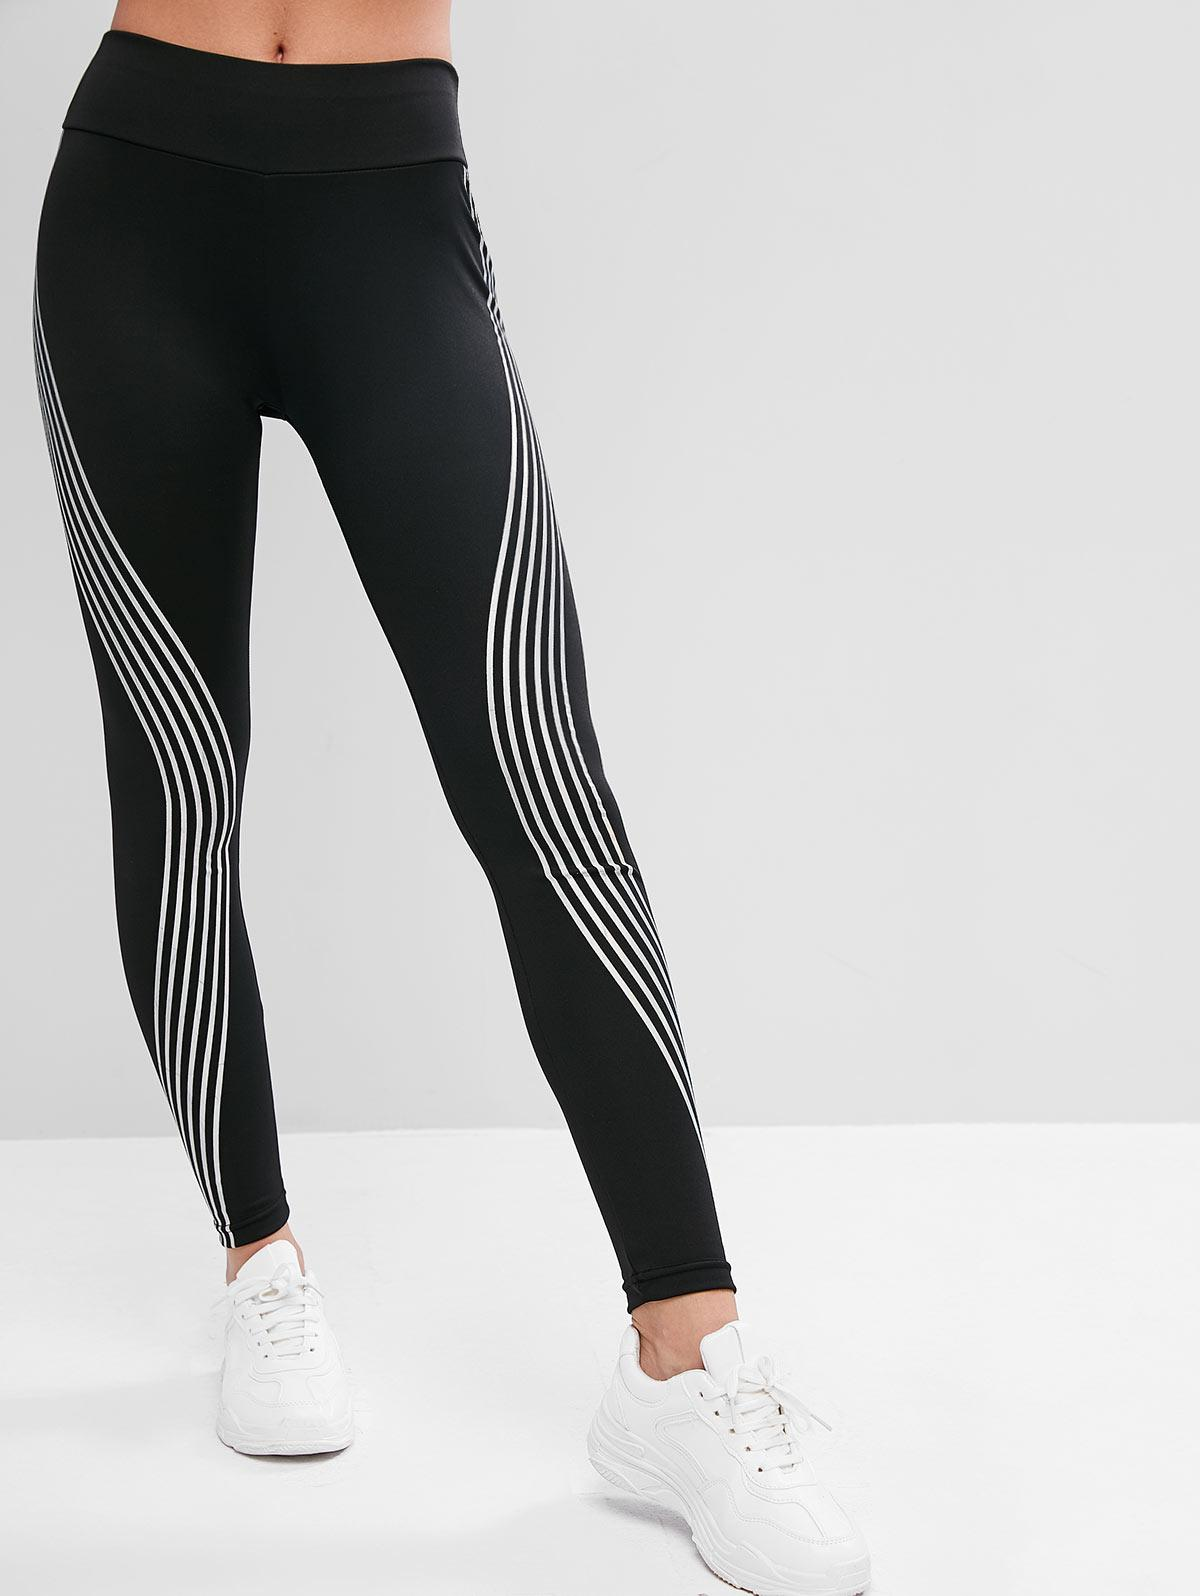 Iridescent Print High Waist Leggings